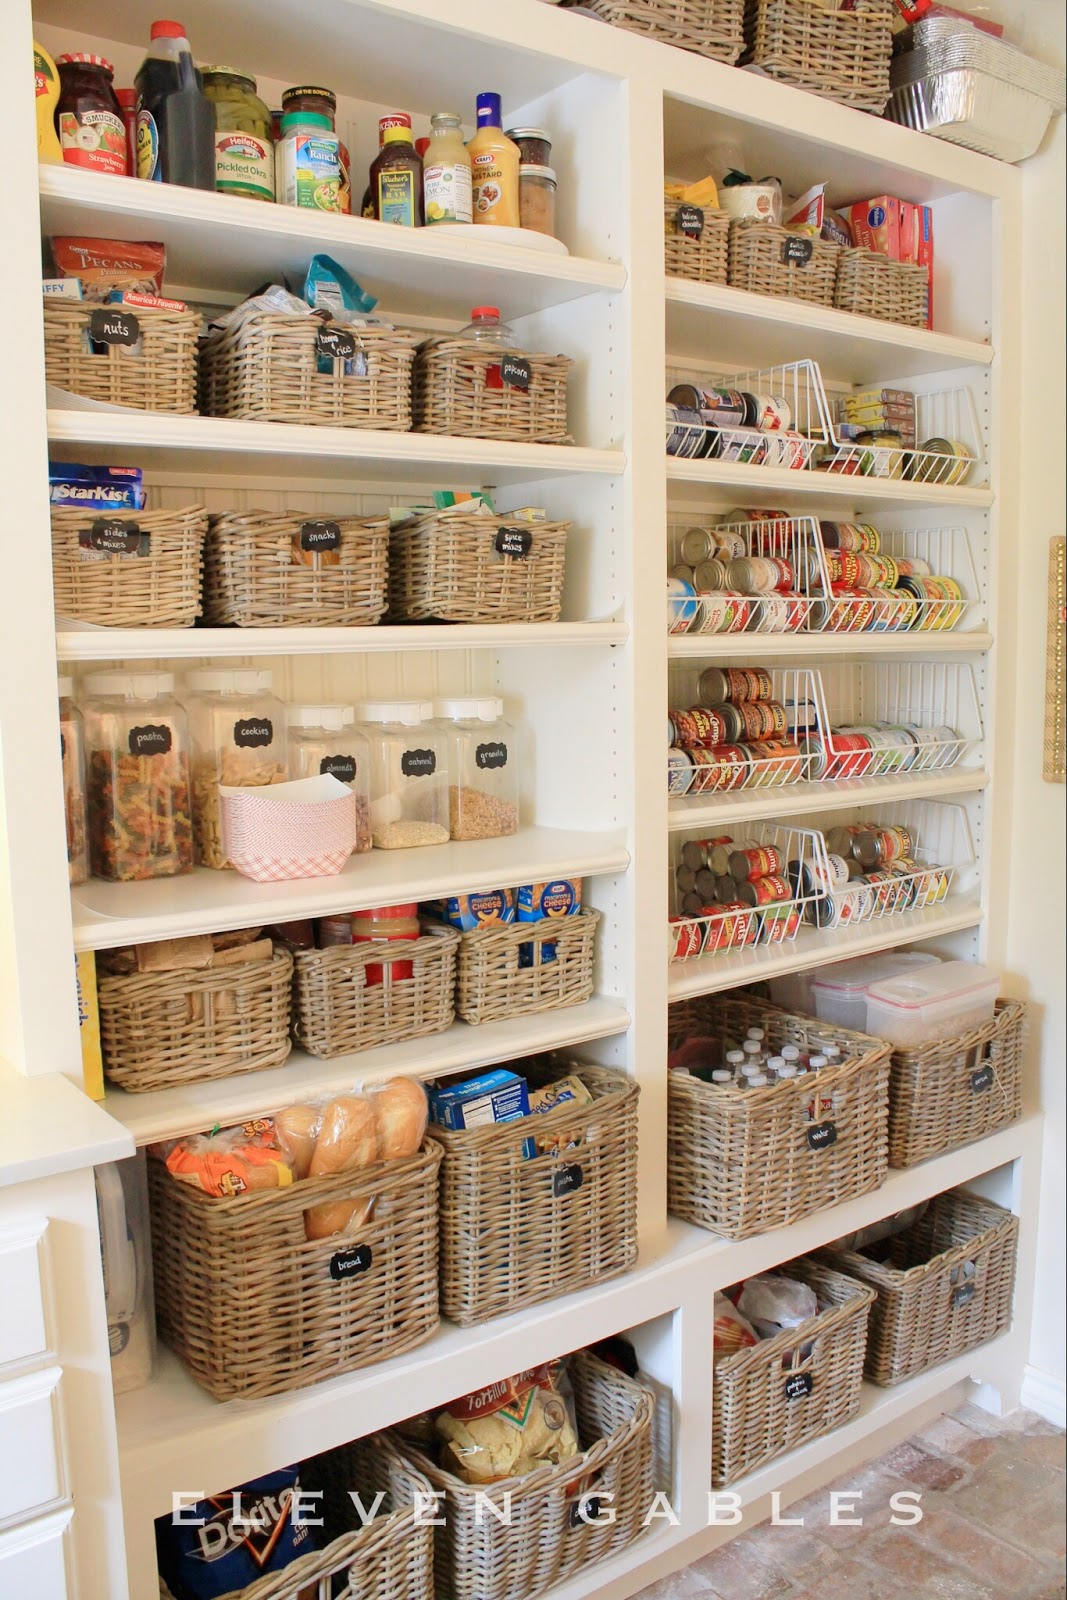 lets get organized 15 kitchen organization ideas kitchen organization ideas Pantry Organization